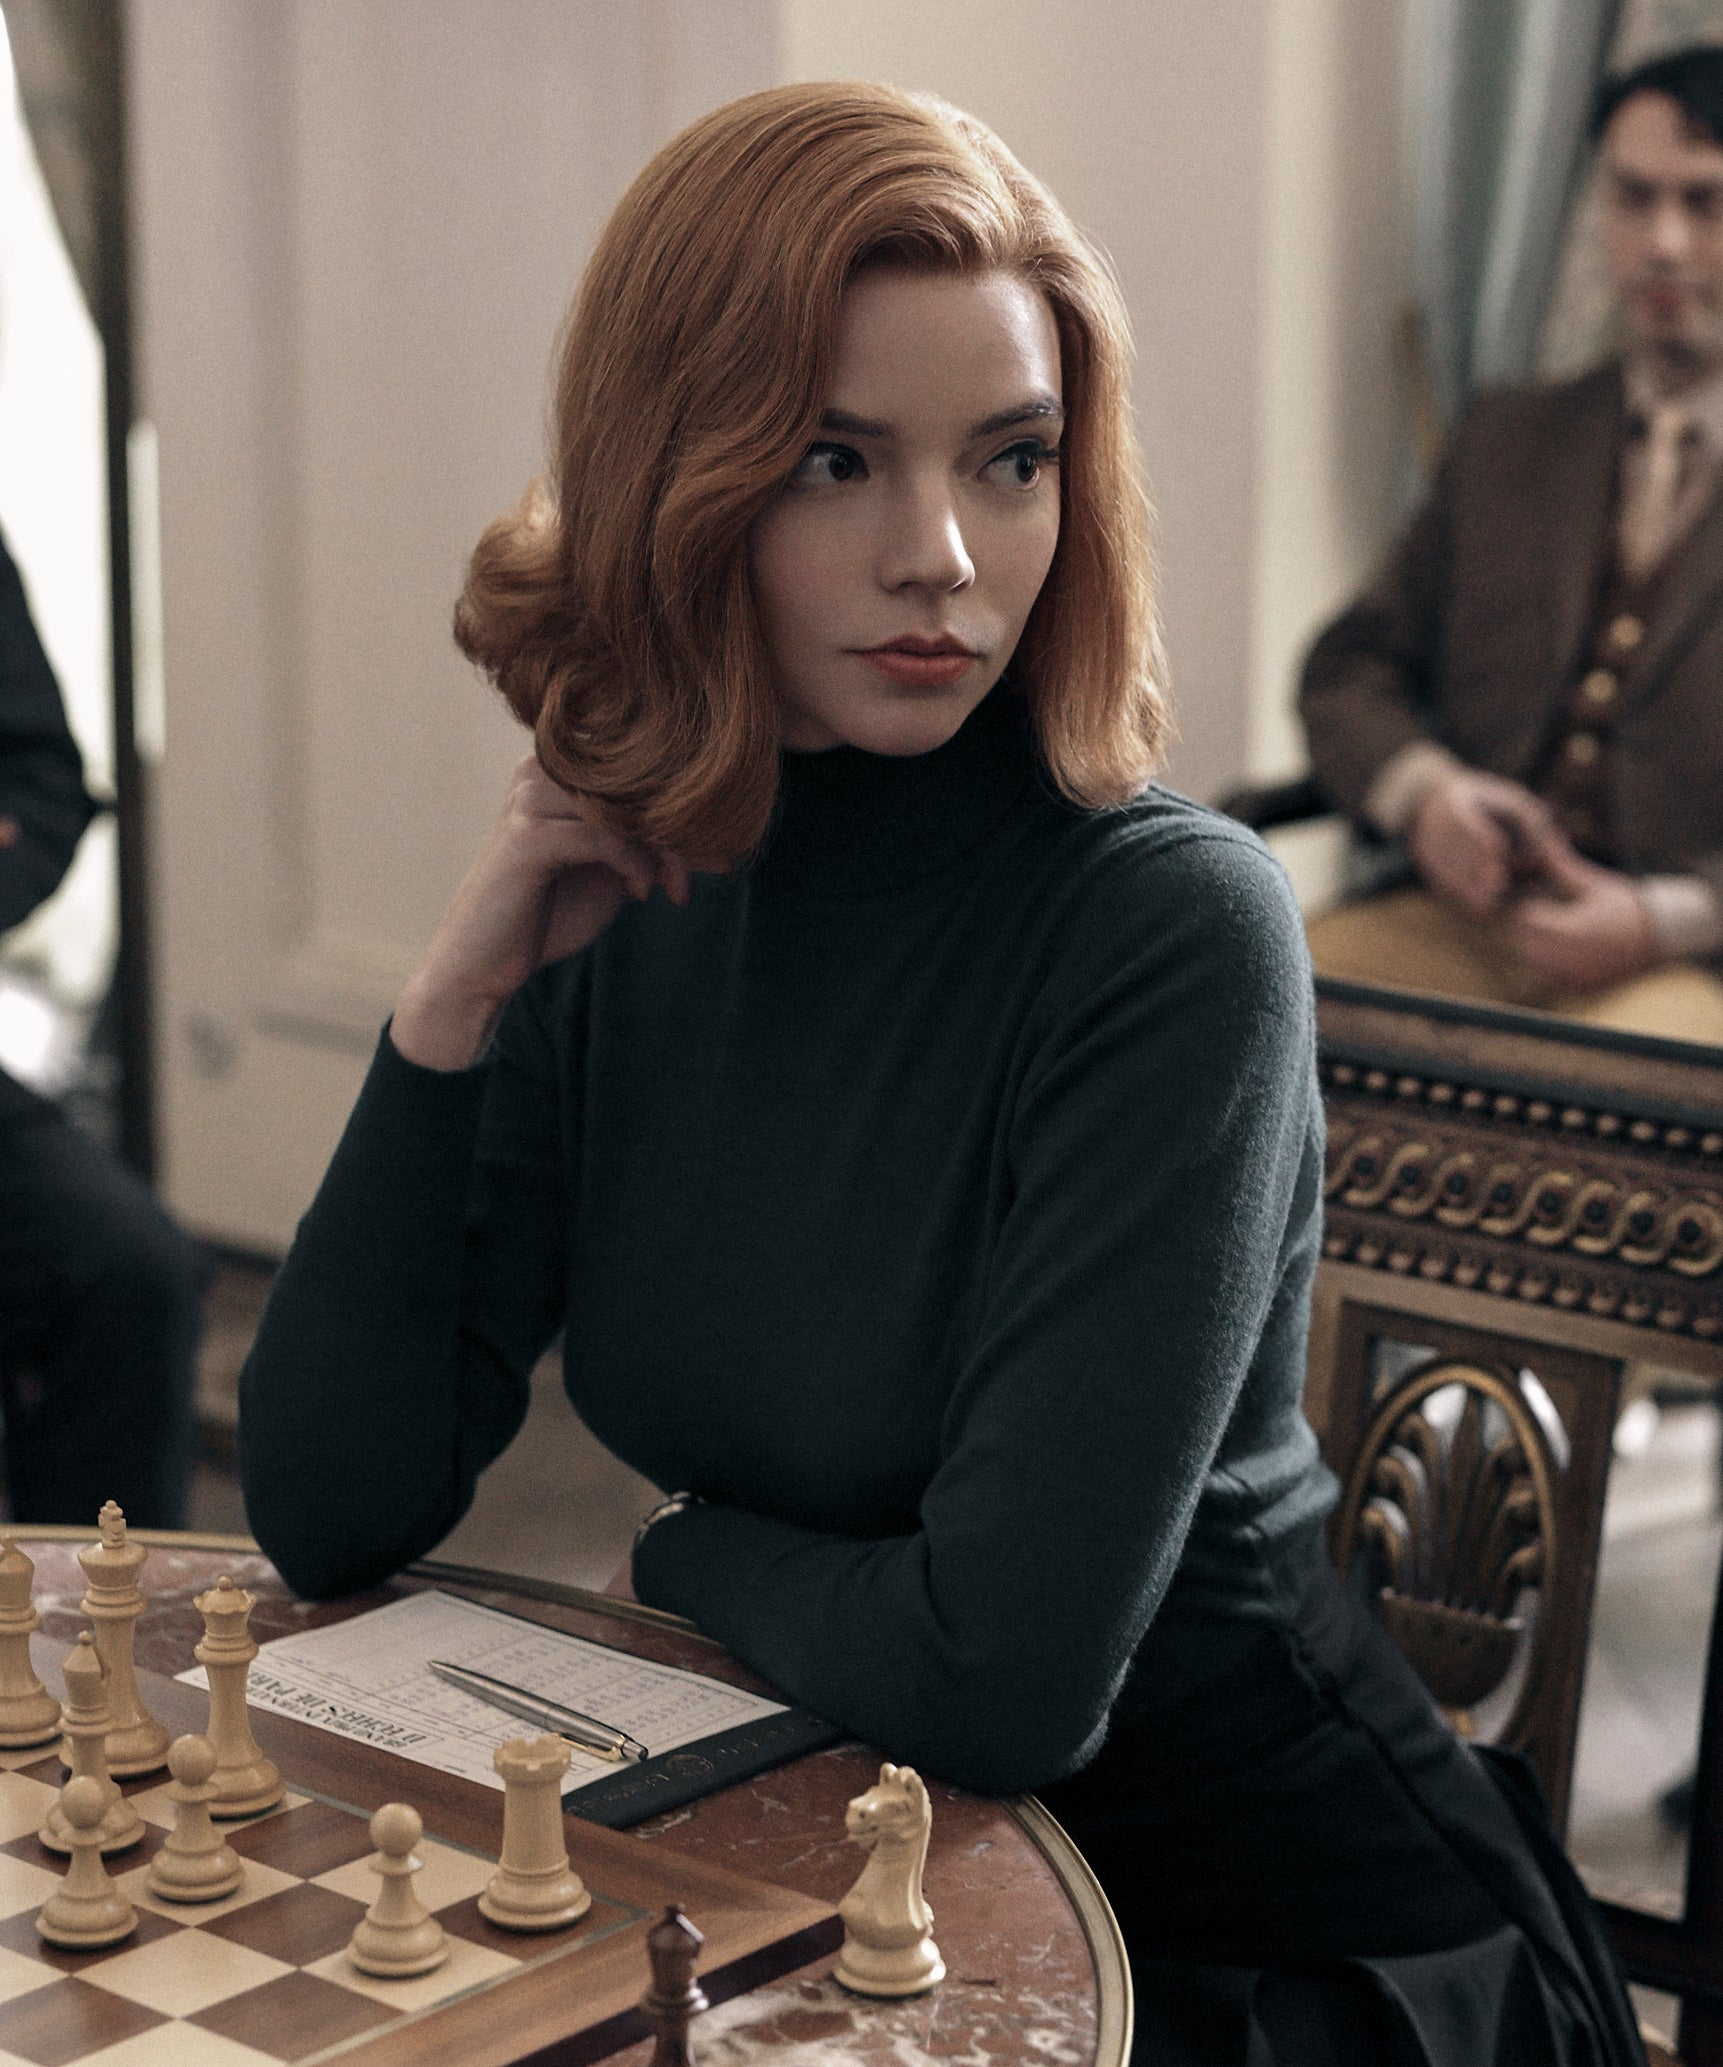 The Queen S Gambit Review Netflix Series Recap Lifestyle The Queen S Gambit Fashion Potluck It was created for netflix by scott frank and allan scott. gambit review netflix series recap